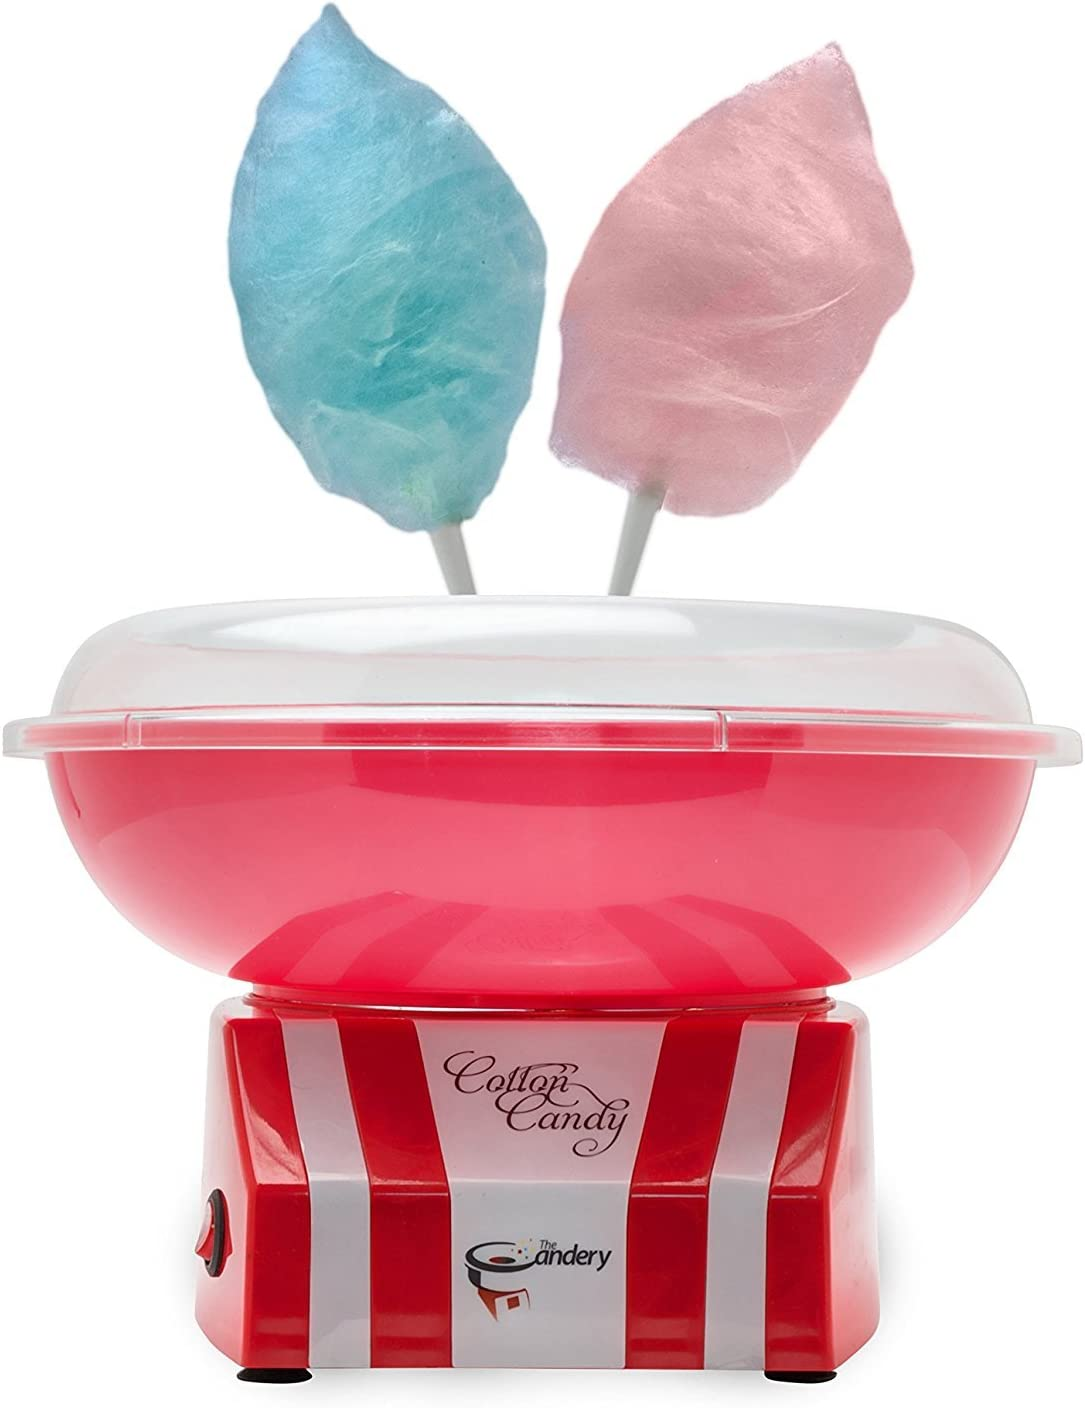 The Candery Cotton Candy Machine and Sugar Kit Raspberry Blue Includes 50 Paper Cones /& 3 Flavors /& Sugar Scoop Kid-Friendly and Easy-to-Assemble Upgraded Strawberry Vanilla